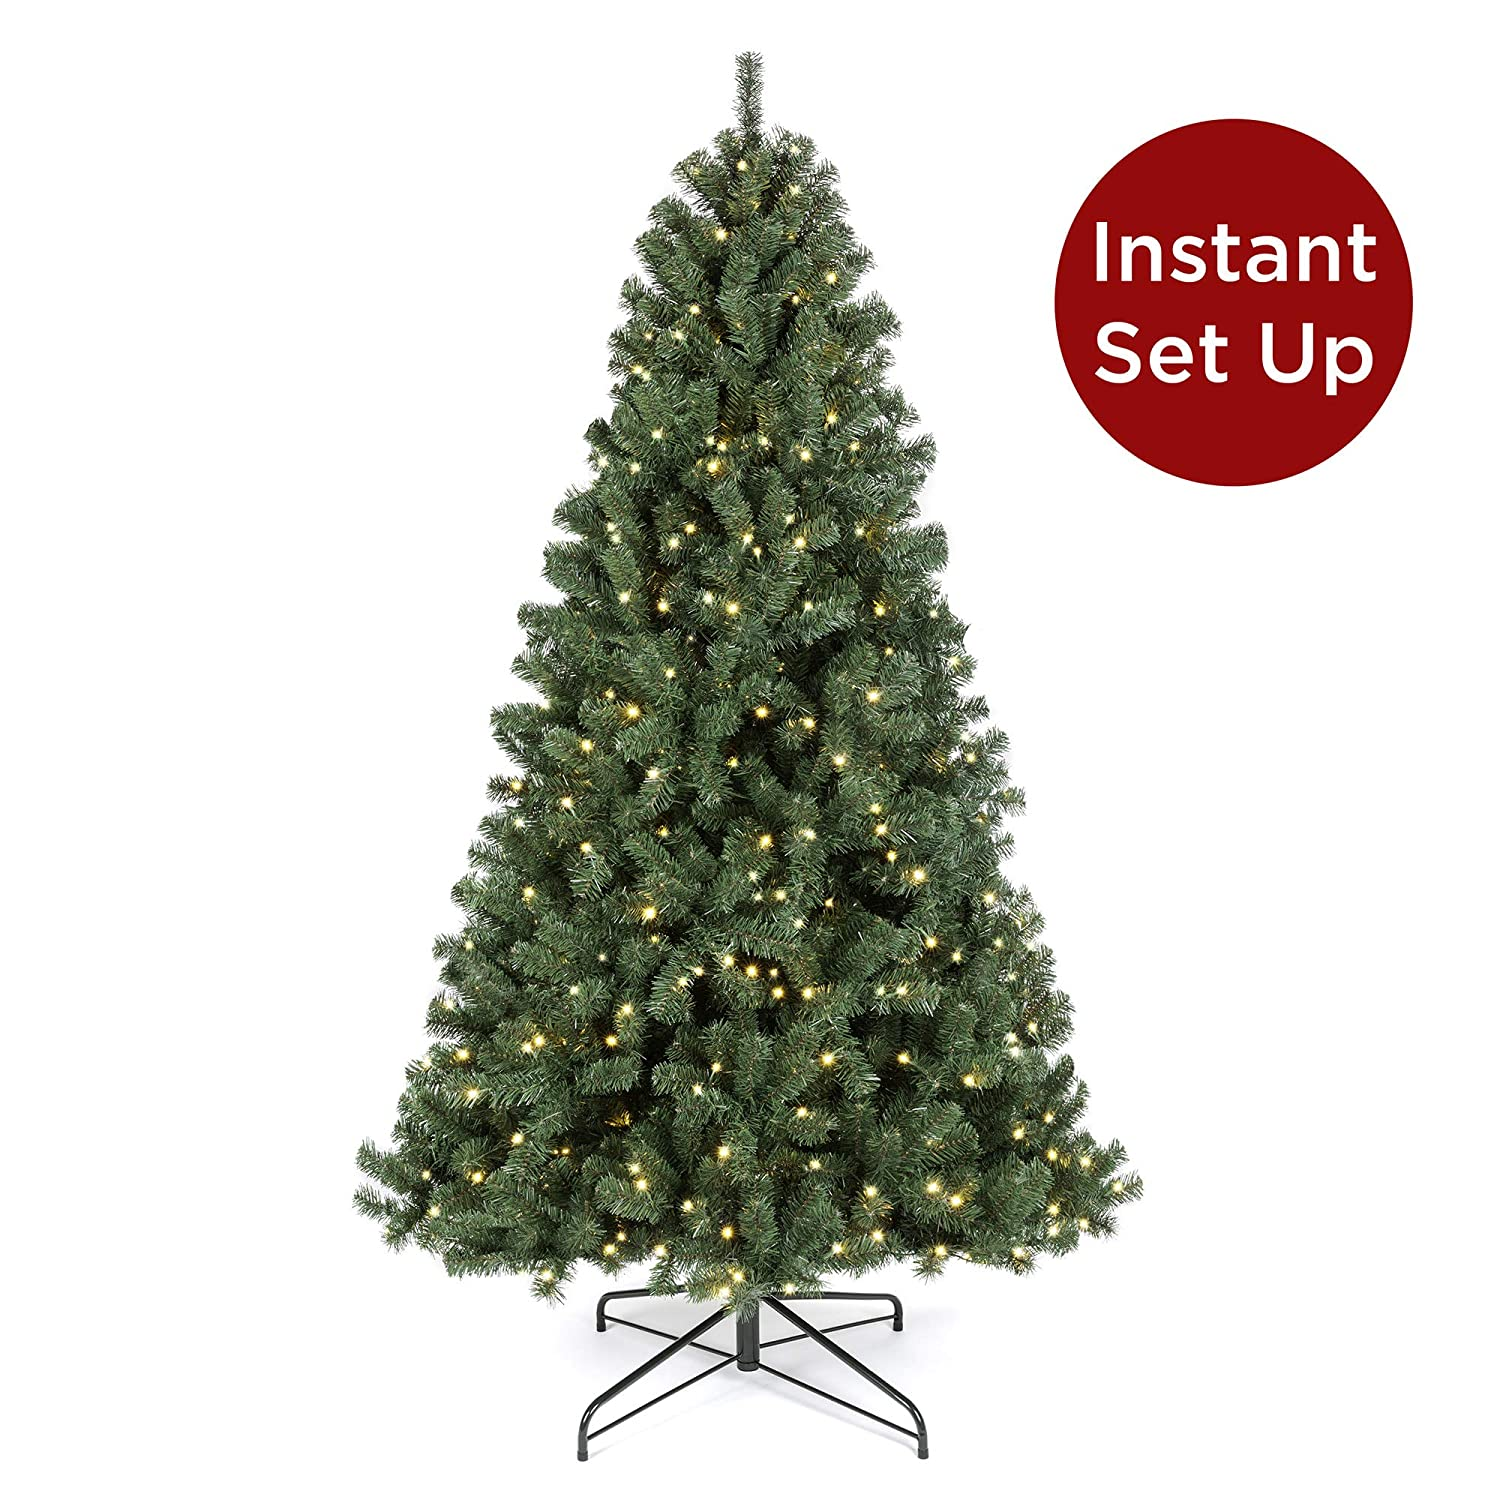 Best Choice Products 7.5ft Pre-Lit Instant No Fluff Artificial Spruce Christmas Tree w/ 550 LED Lights, 1,346 Tips